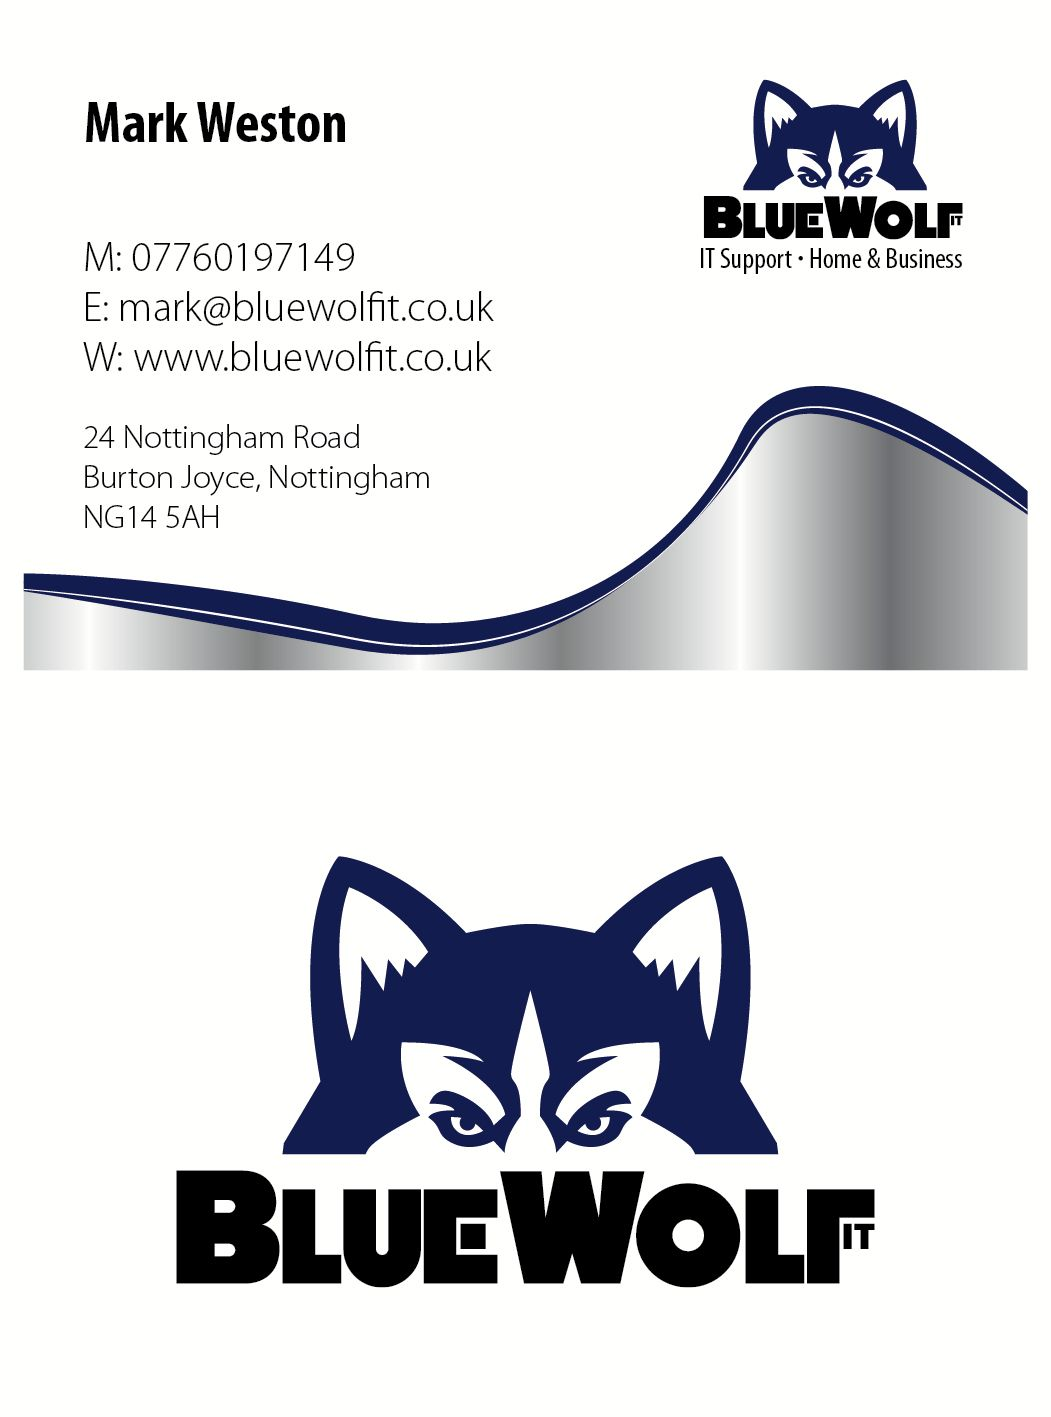 Blue Wolf IT - Business Card | Business Stationery | Pinterest ...